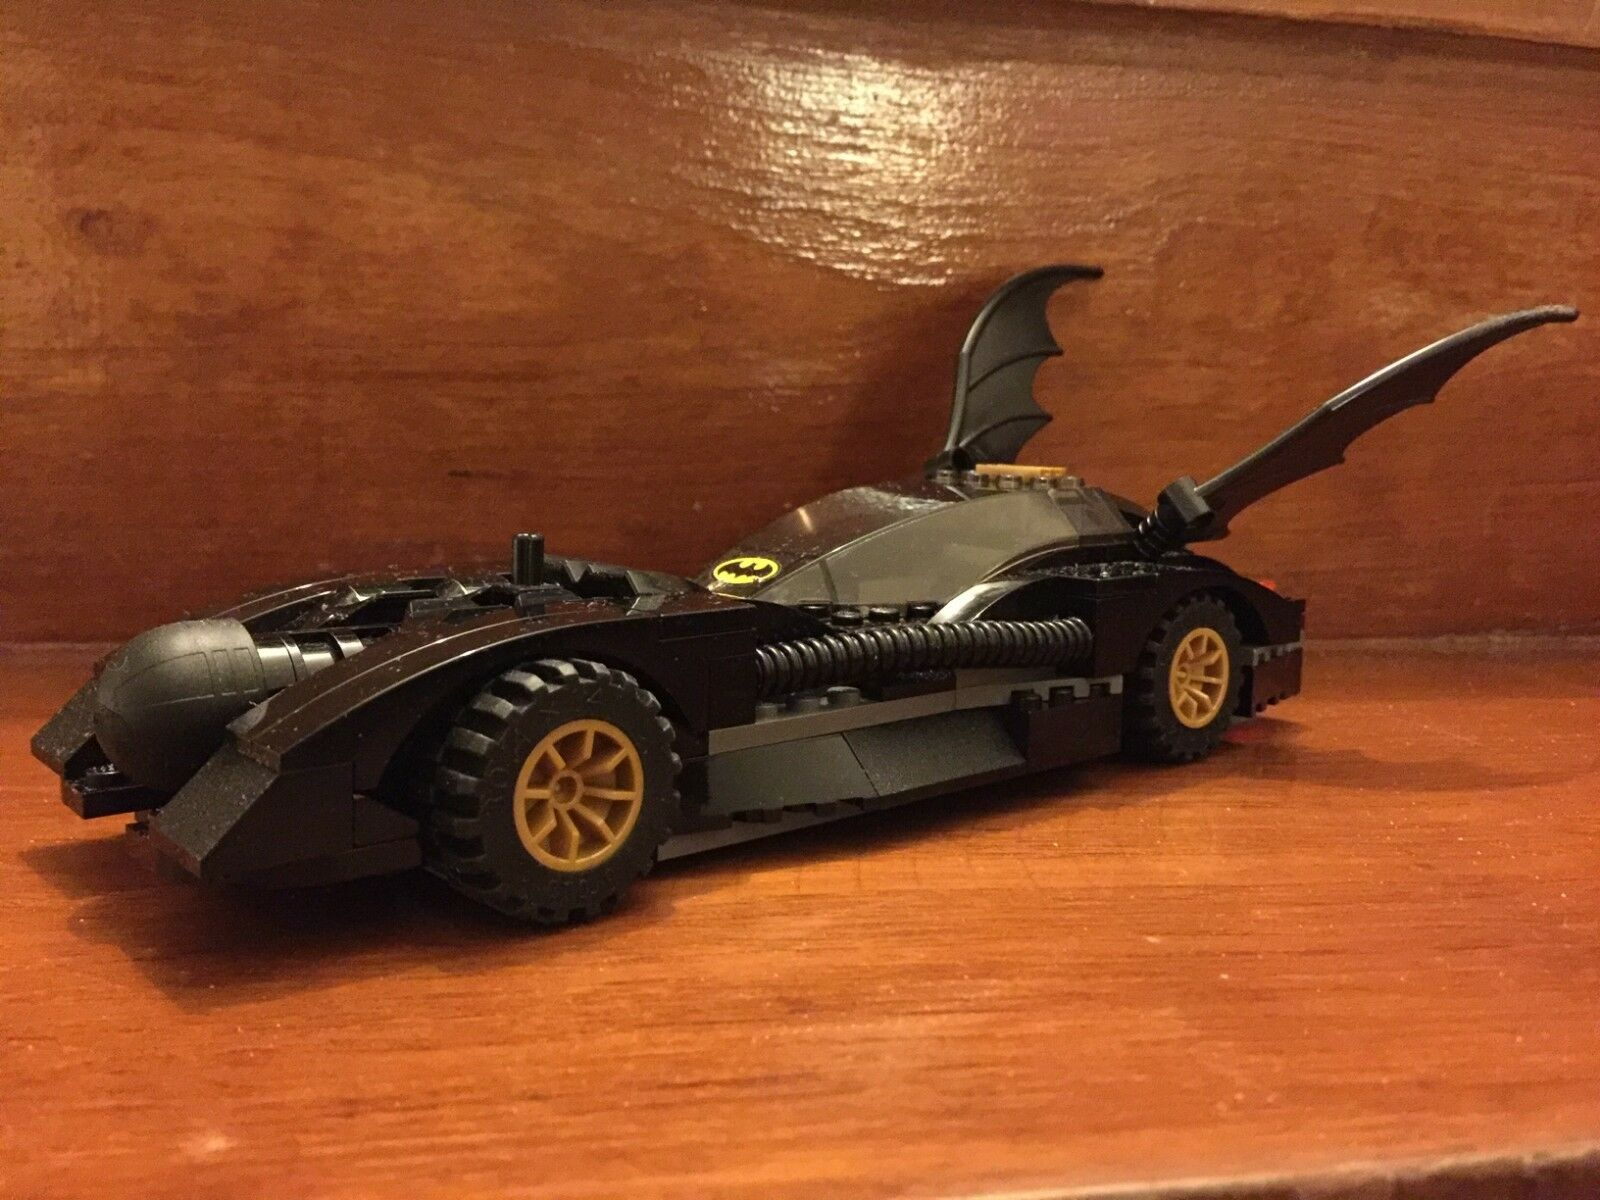 Batmobile de lego 7781 Batman Classic 1989 sólo 2006